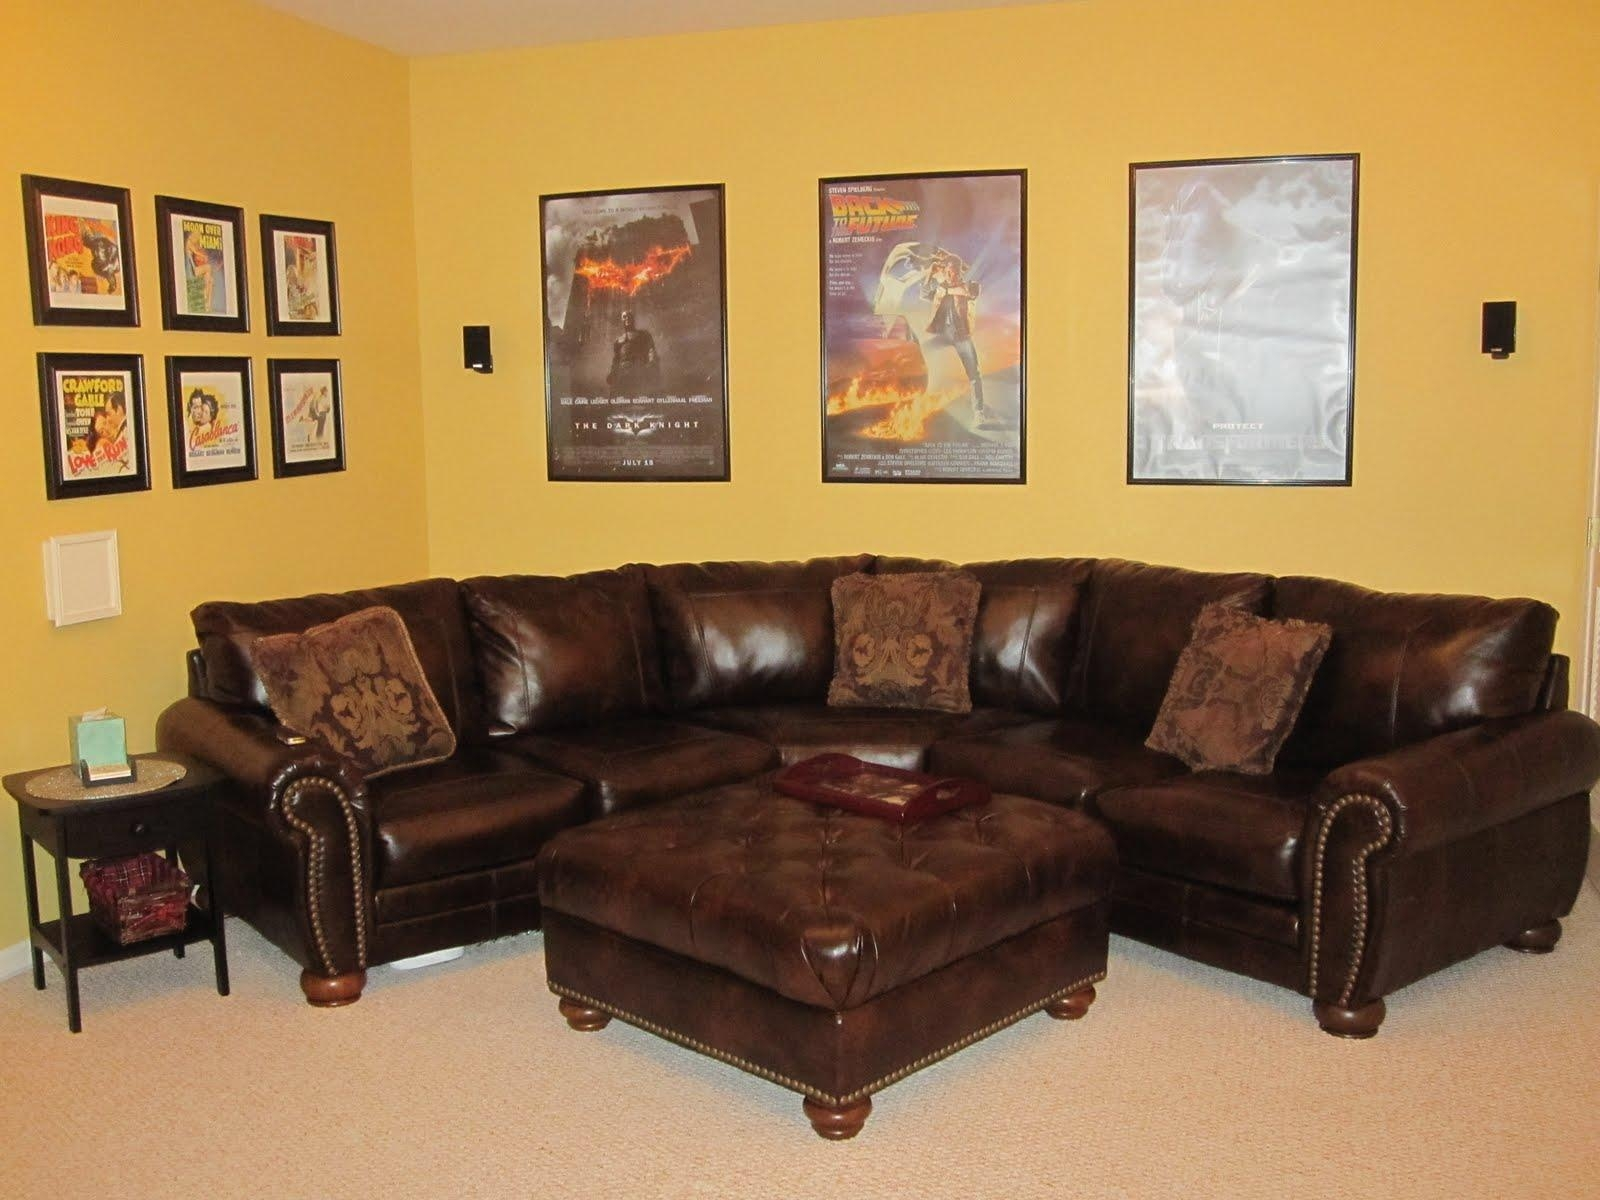 Decor: Fabulous Home Furniture Decor With Classy Thomasville Intended For Thomasville Leather Sectionals (Image 5 of 20)